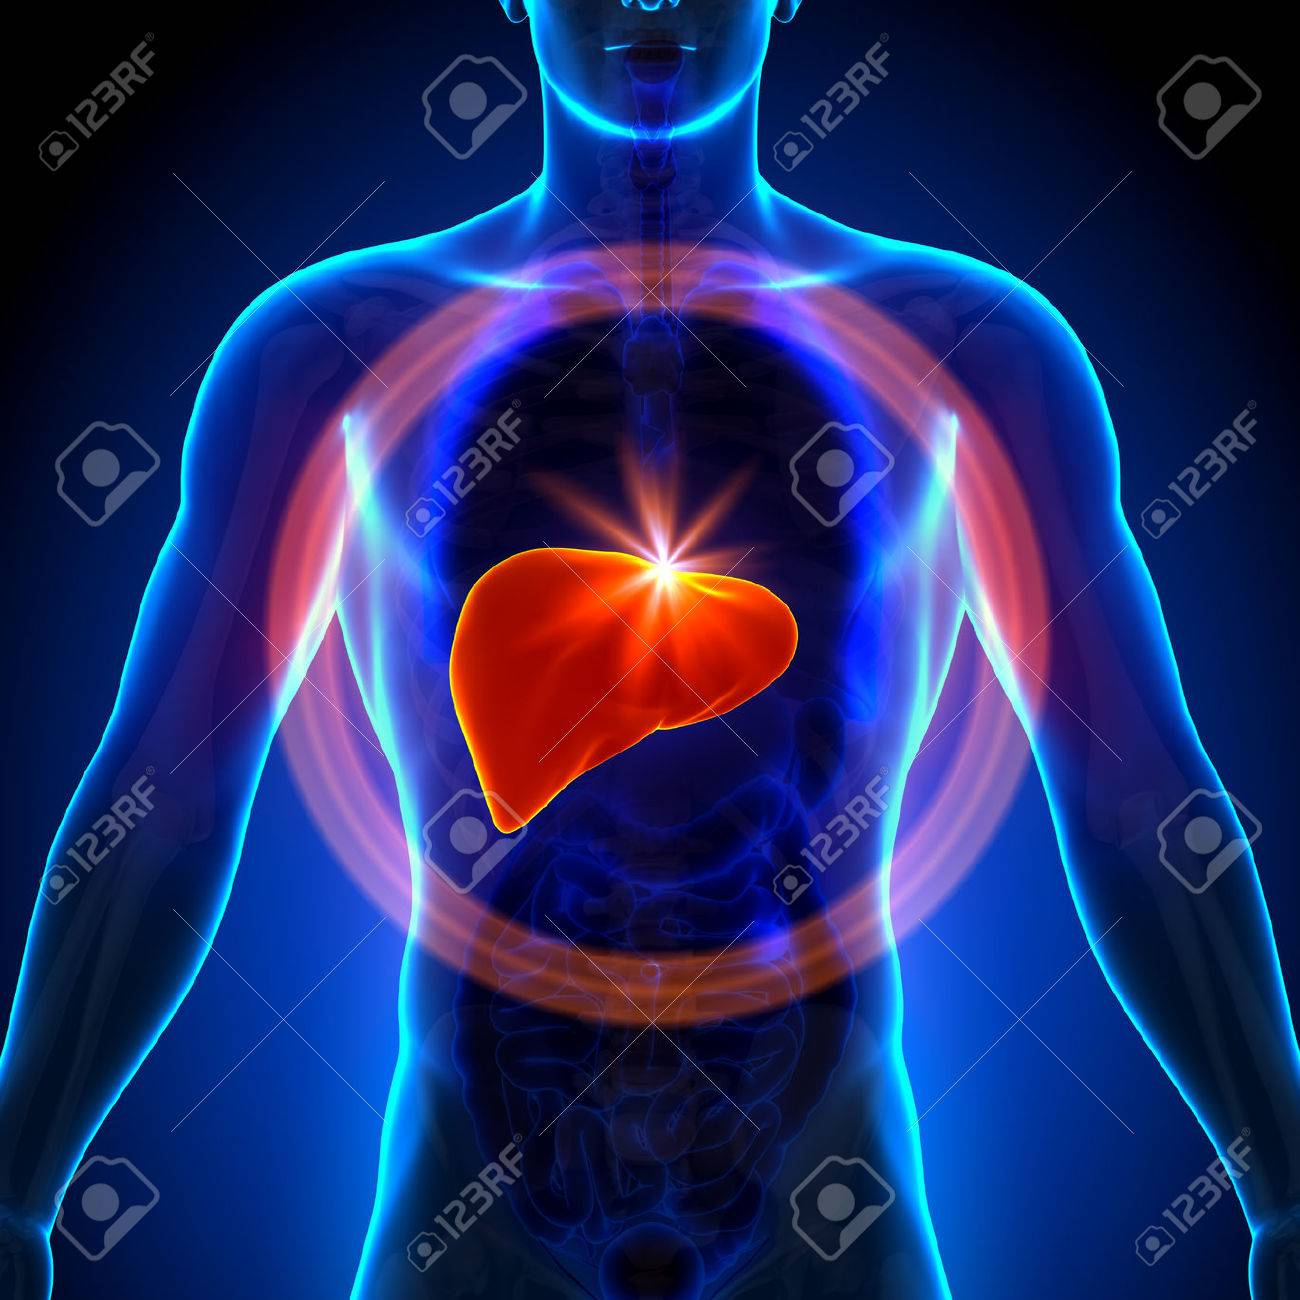 Liver - Male Anatomy Of Human Organs - X-ray View Stock Photo ...